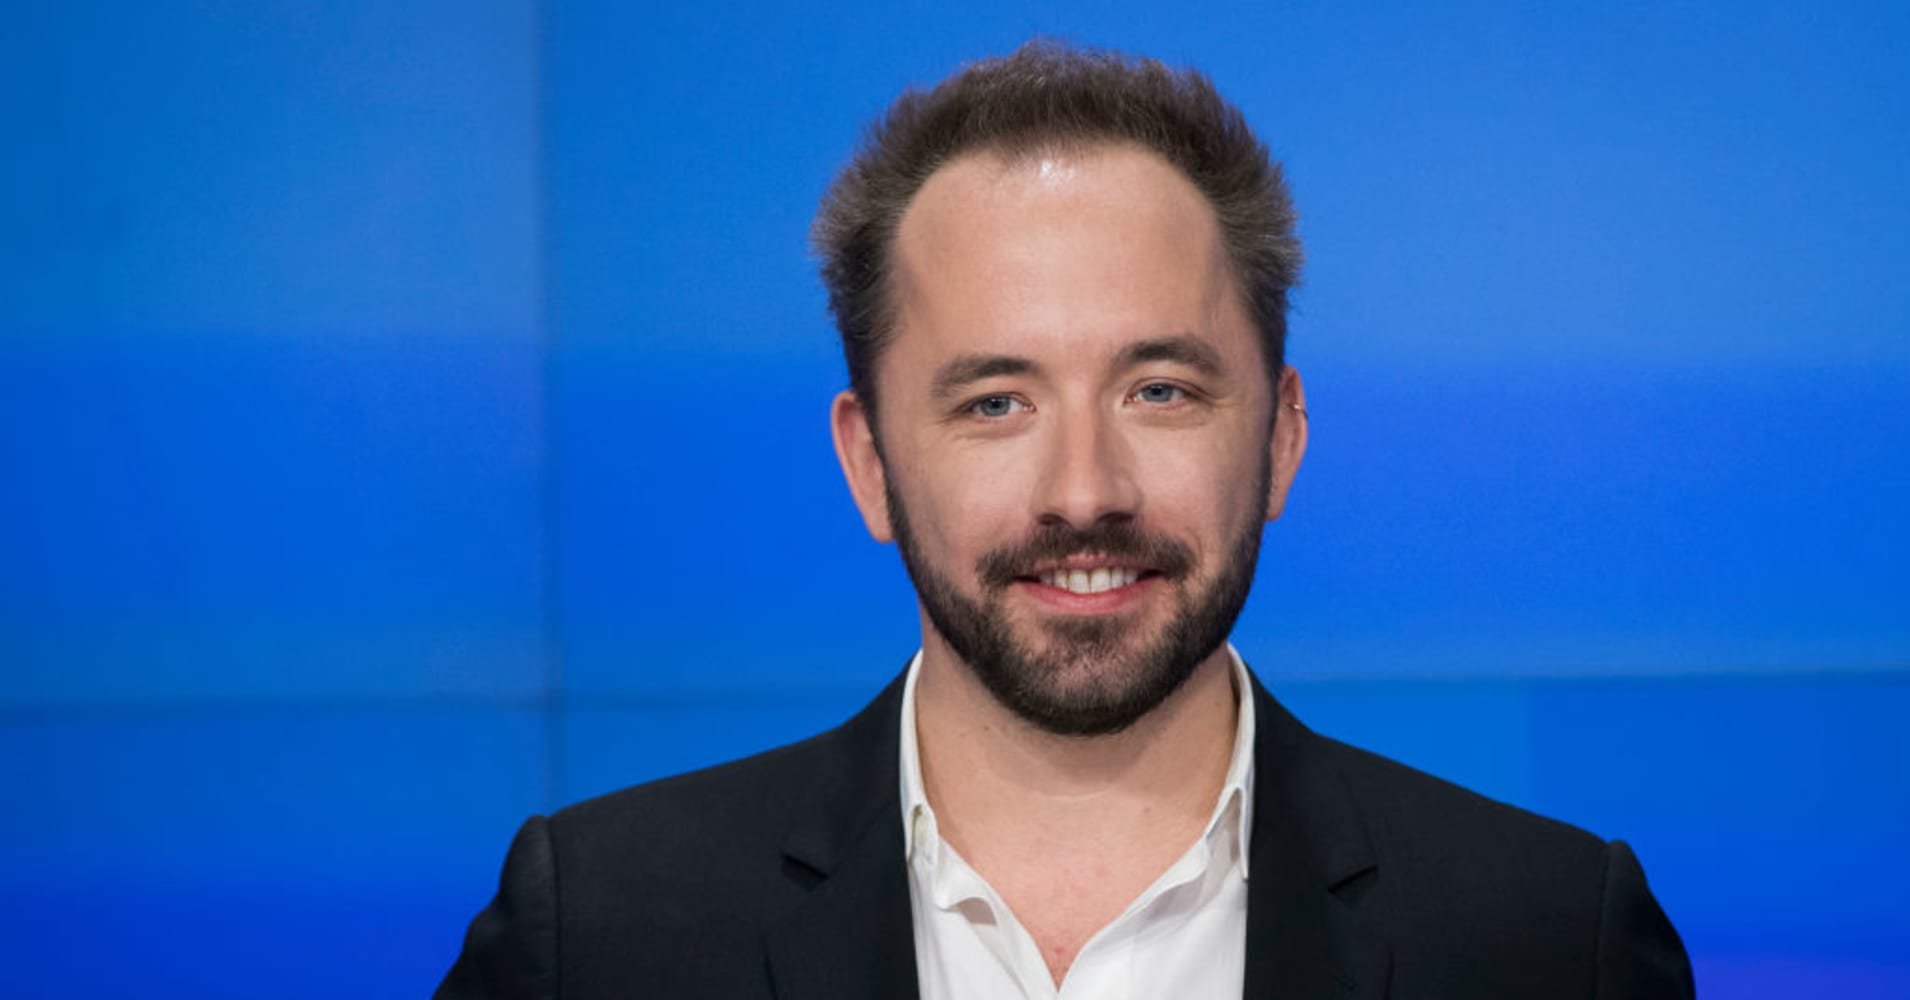 Drew Houston, co-founder and CEO of Dropbox